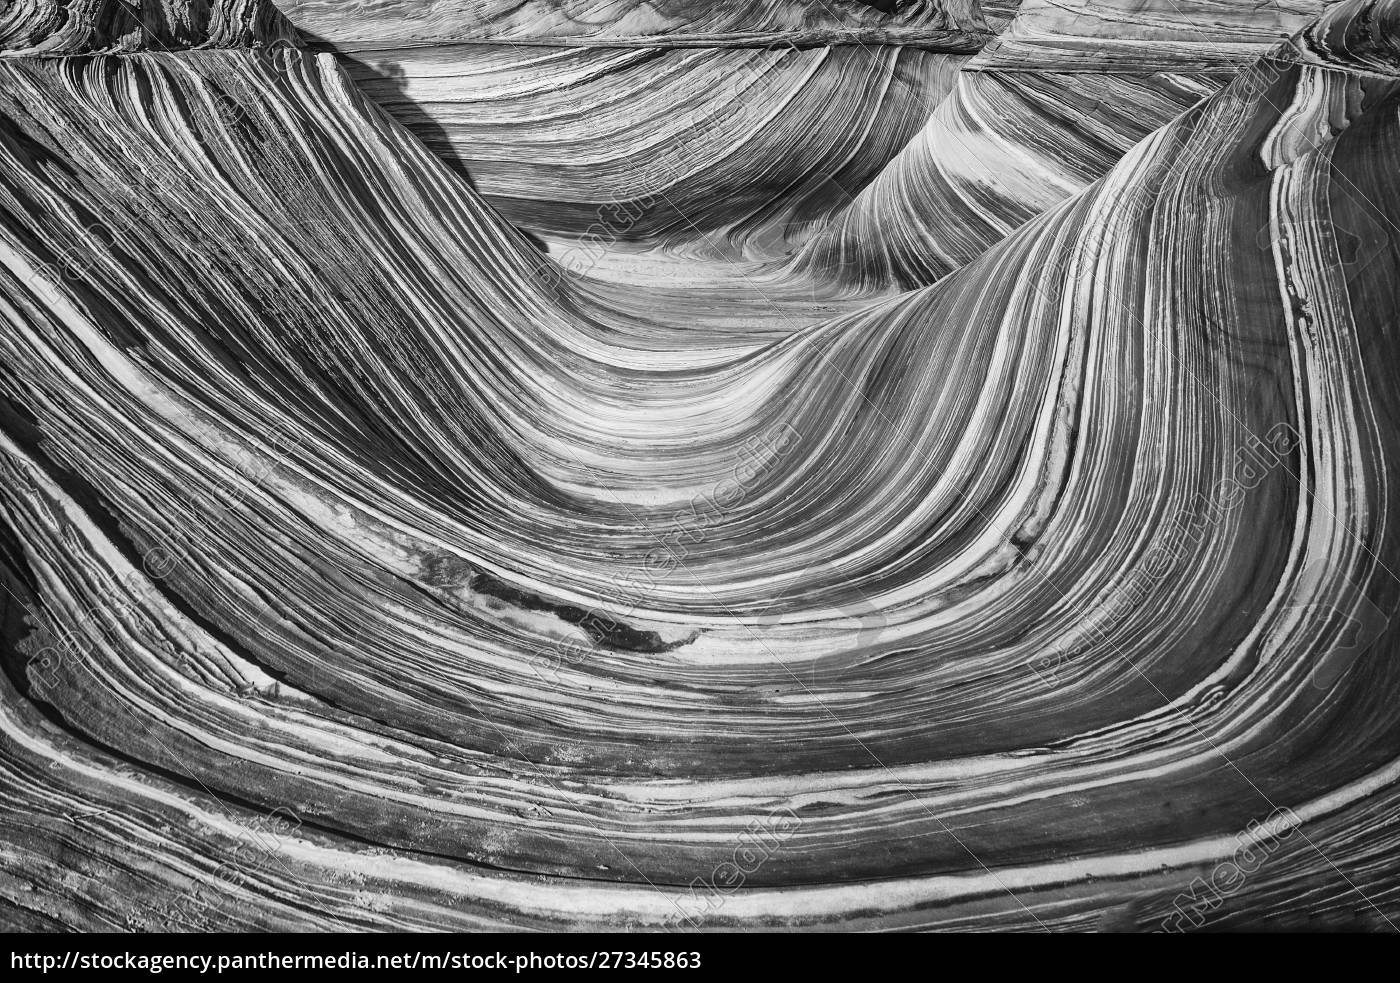 above, the, wave, zion, utah, , usa - 27345863